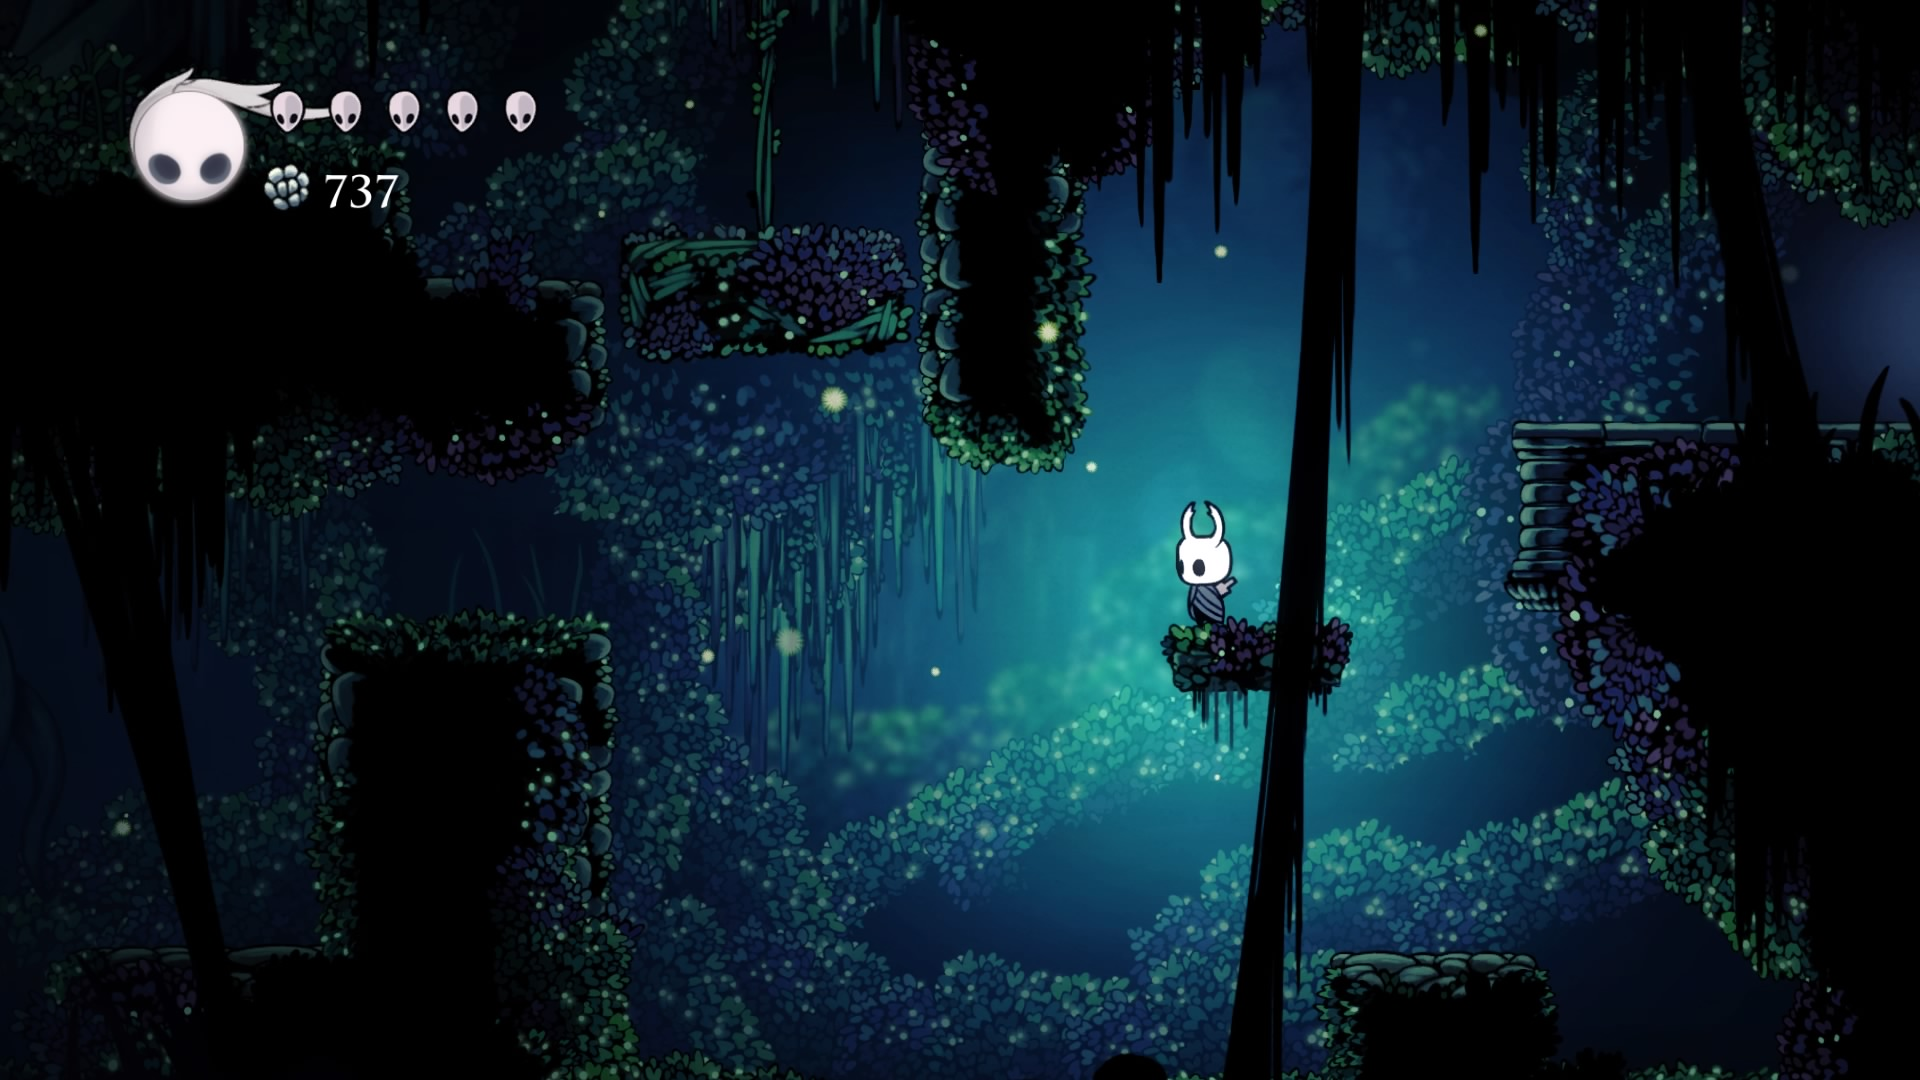 Hollow Knight 20191009154536 - Hollow Knight, guida e lore: Verdevia II